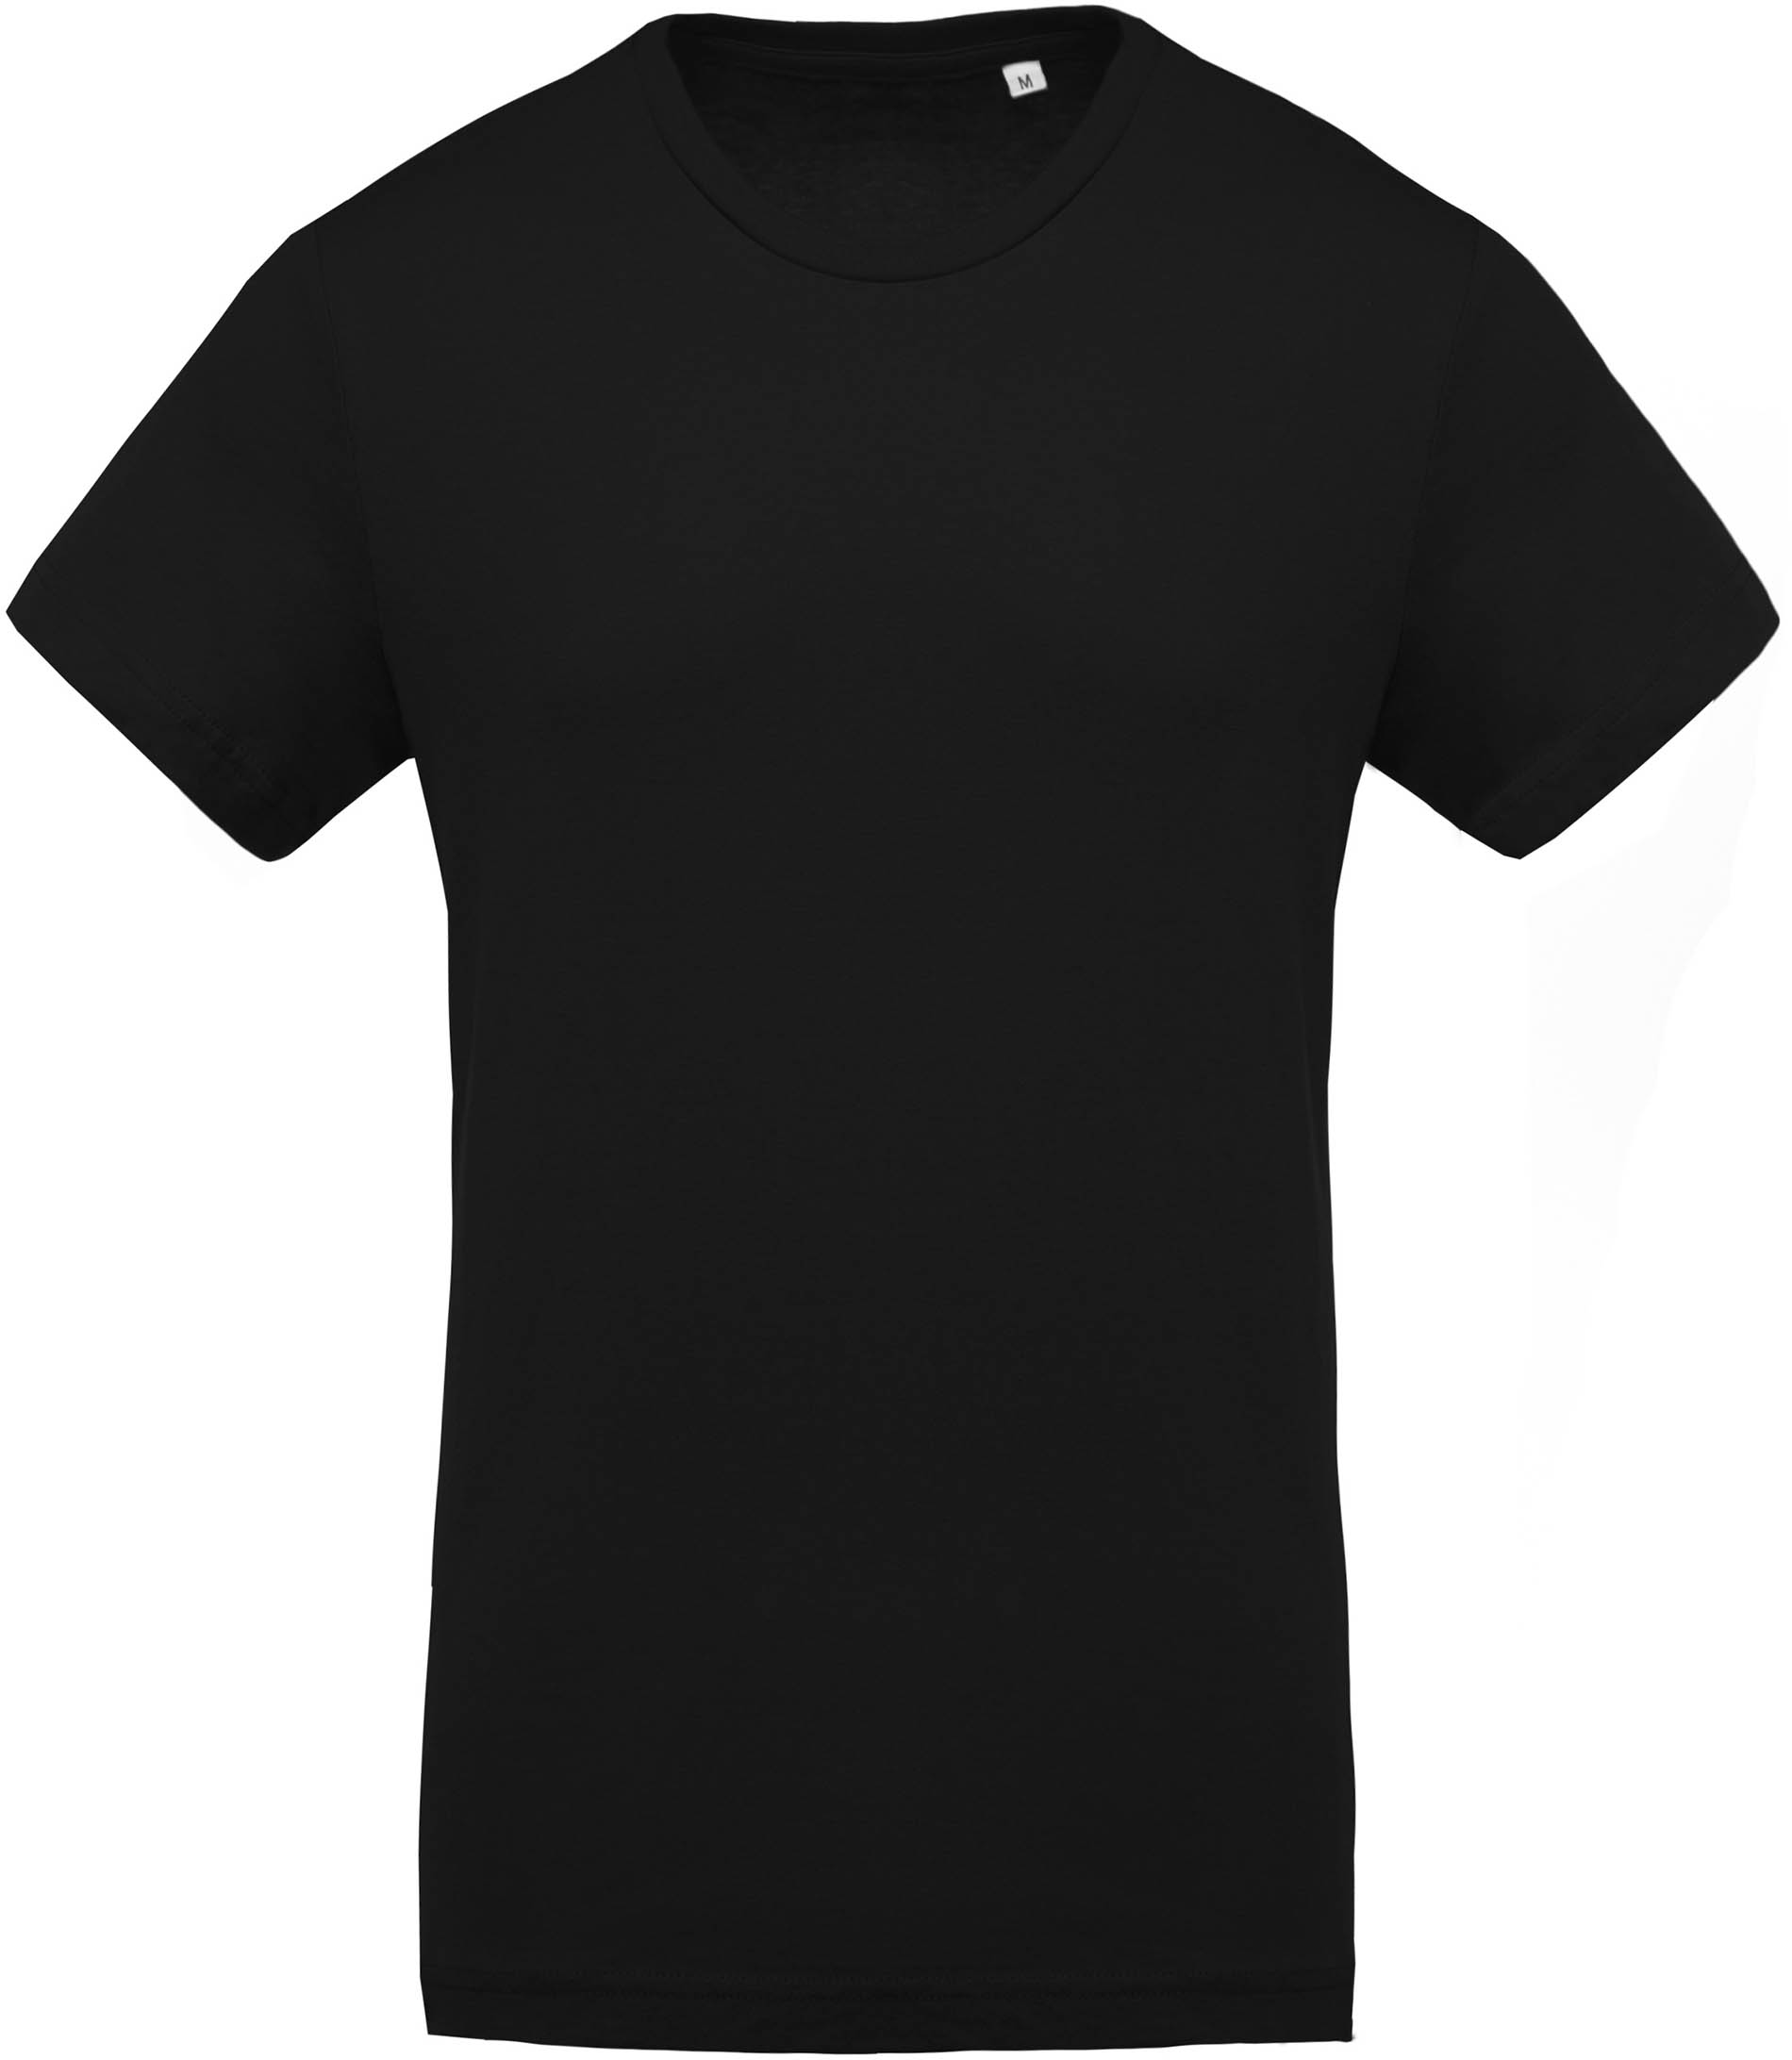 t shirt coton bio col rond homme black gladiasport. Black Bedroom Furniture Sets. Home Design Ideas